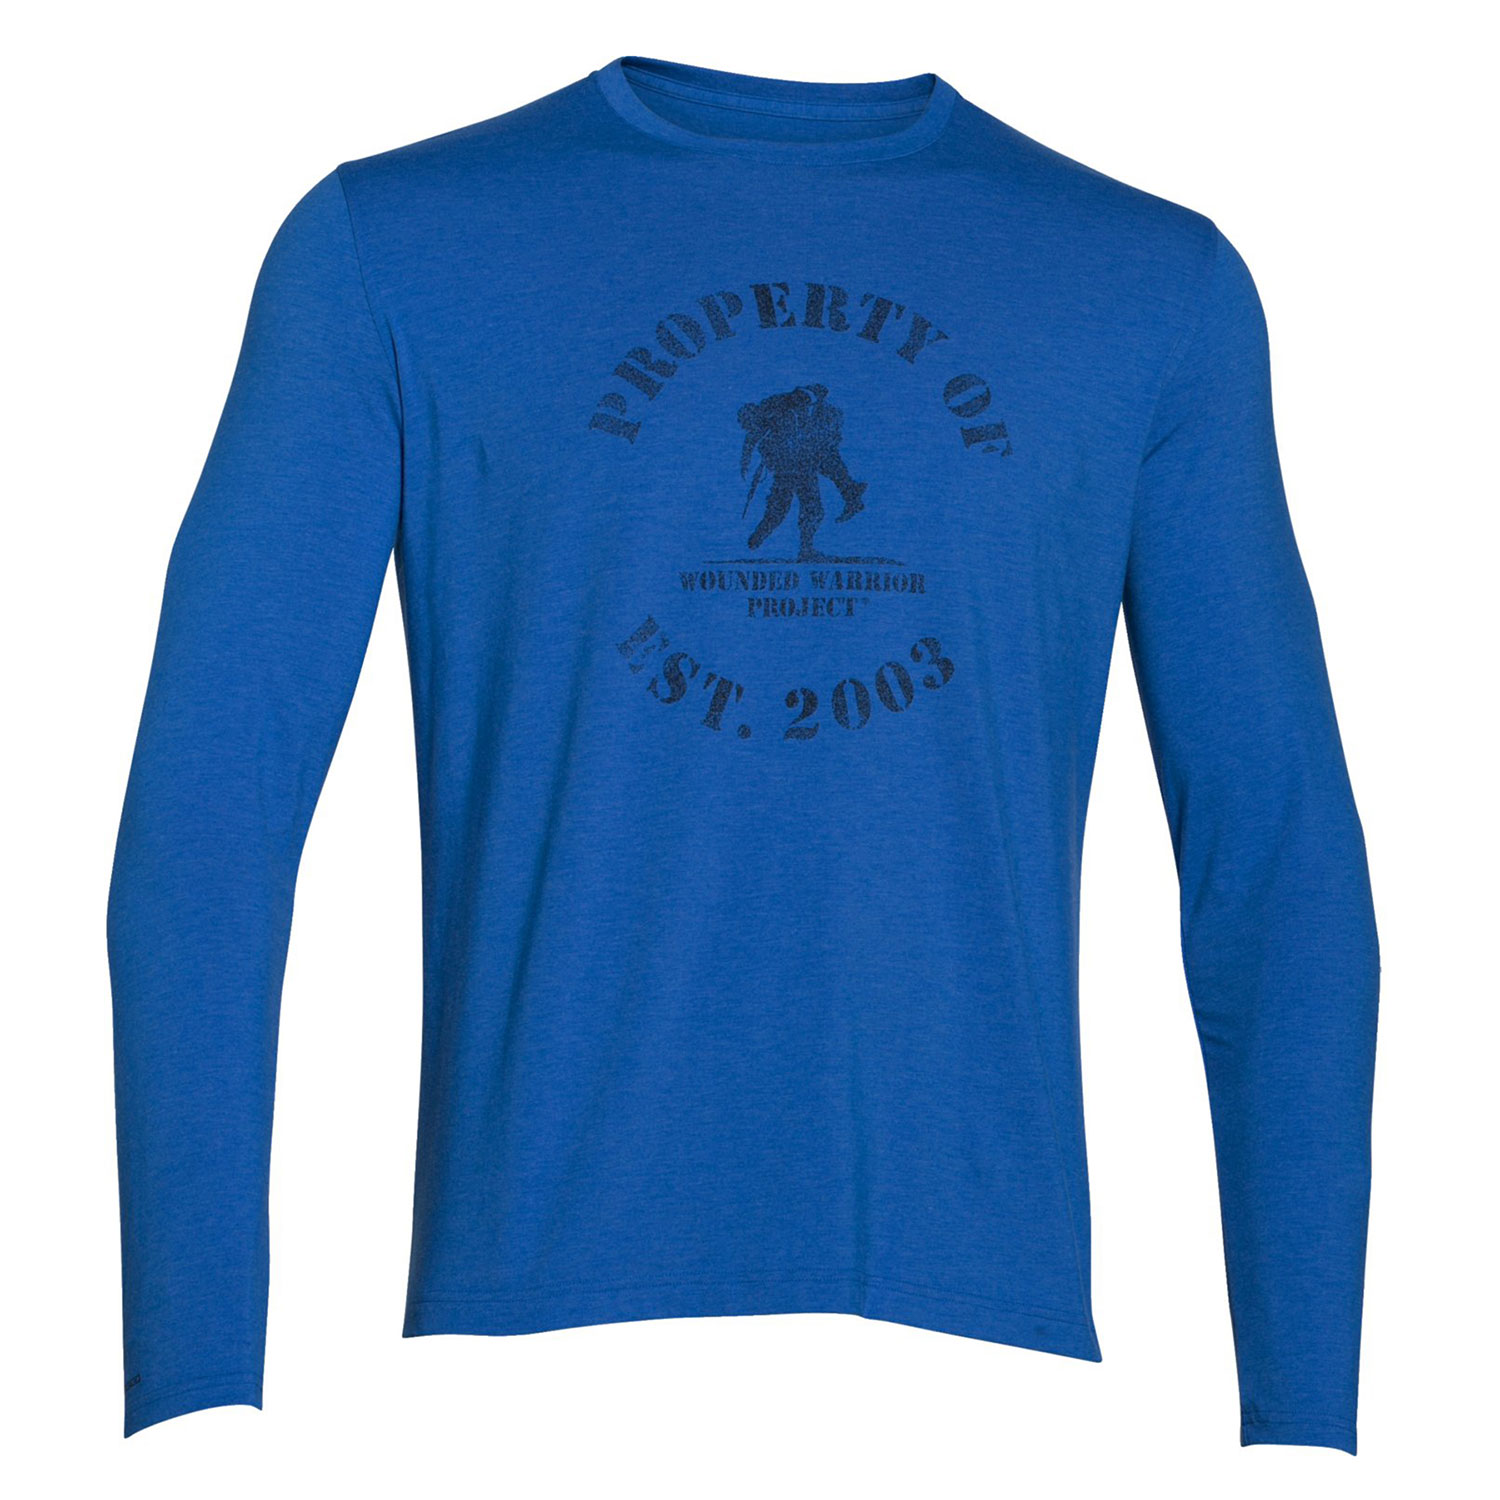 Under Armour Men's WWP Property of Long Sleeve T-Shirt